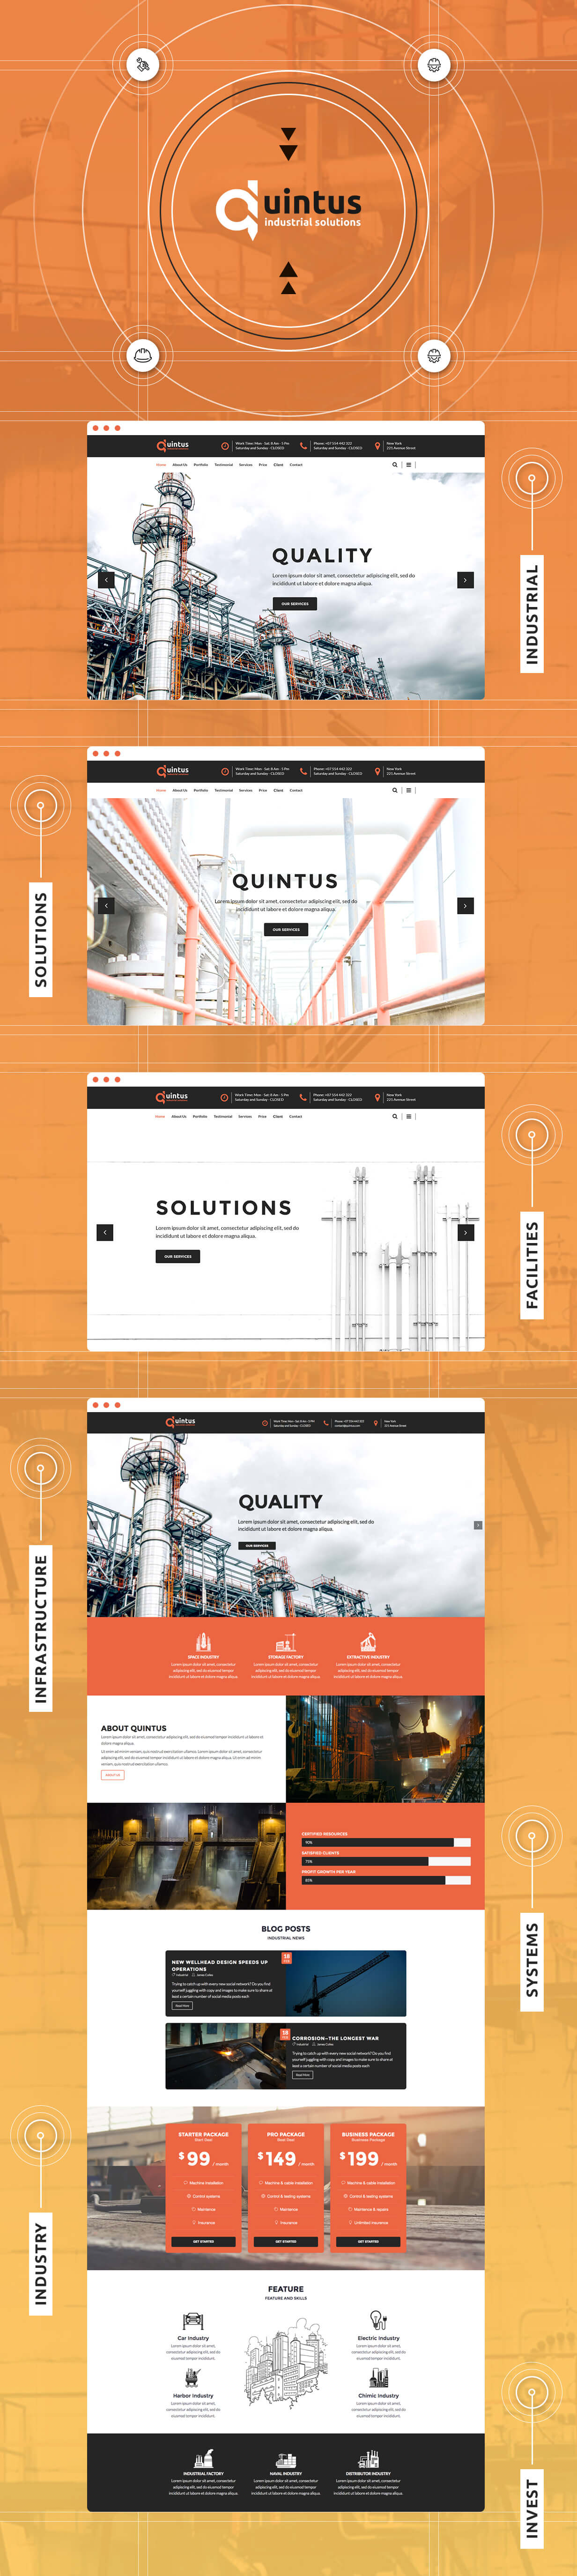 Quintus - Industry / Factory / Engineering WordPress Theme - 2